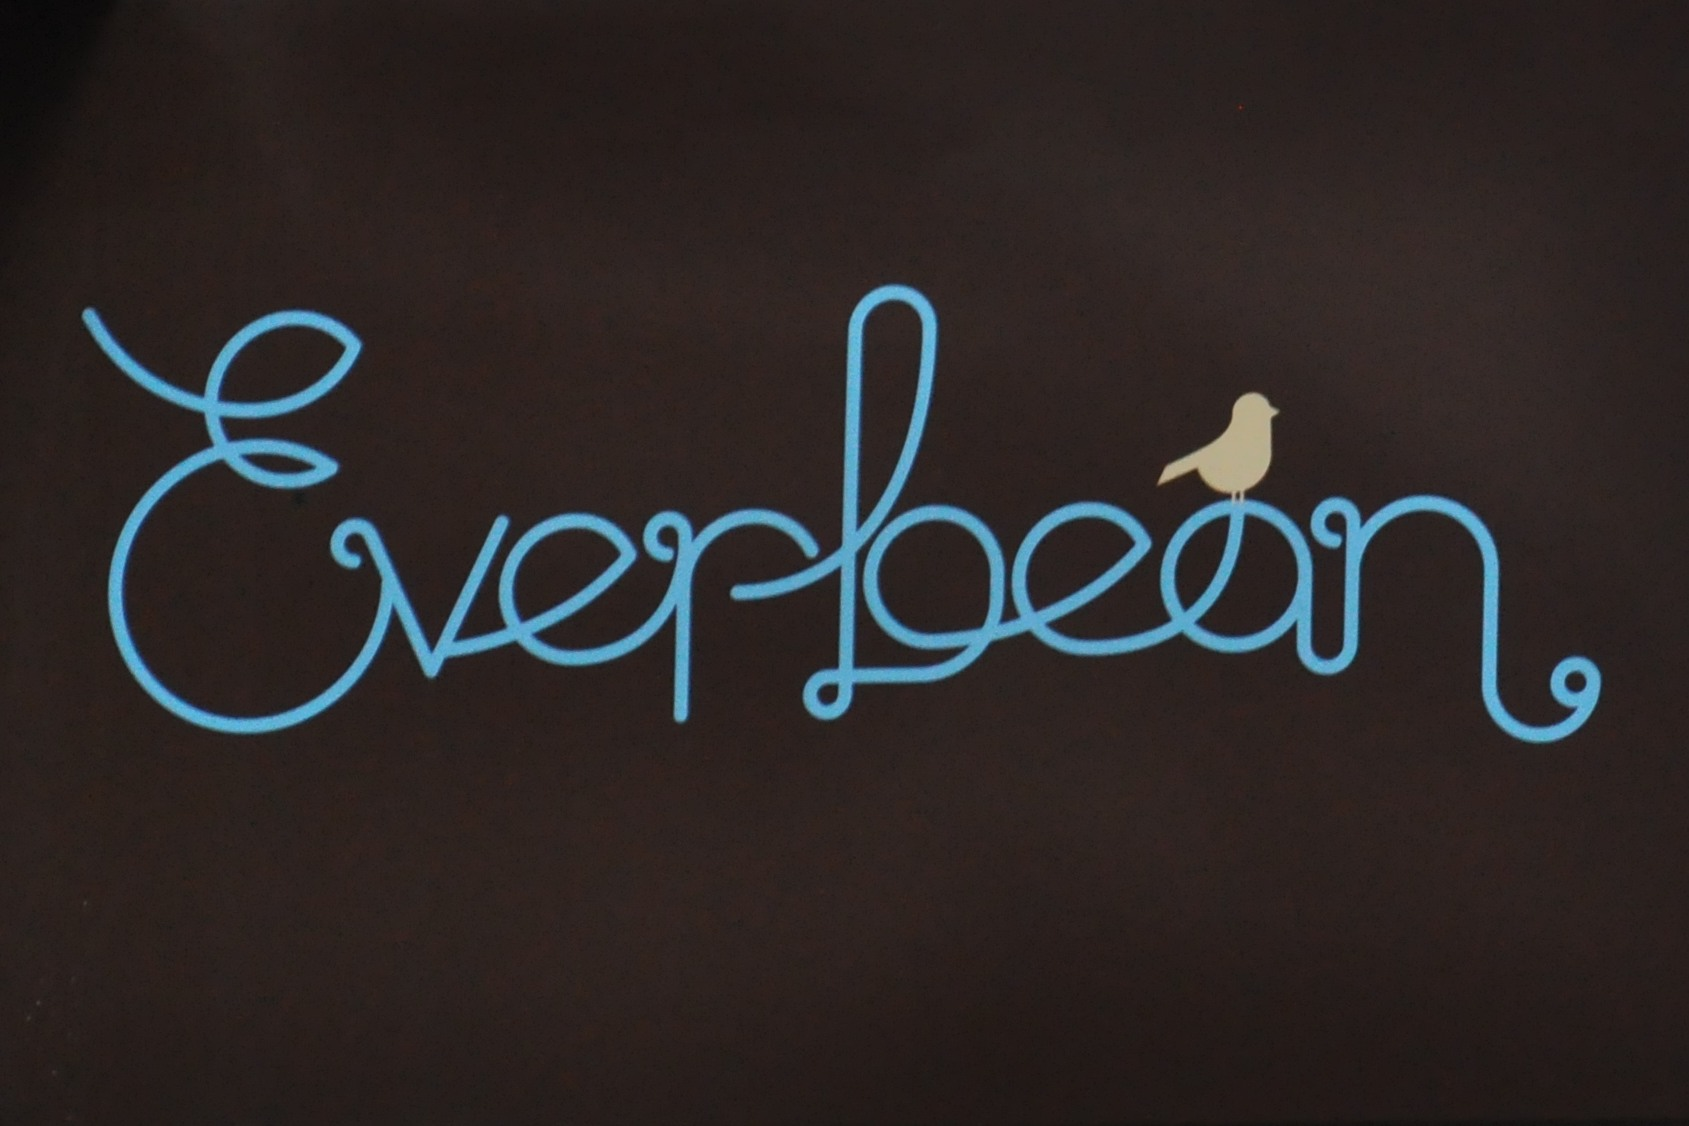 Everbean written in a cursive script, blue on brown, with the outline of a bird on the a